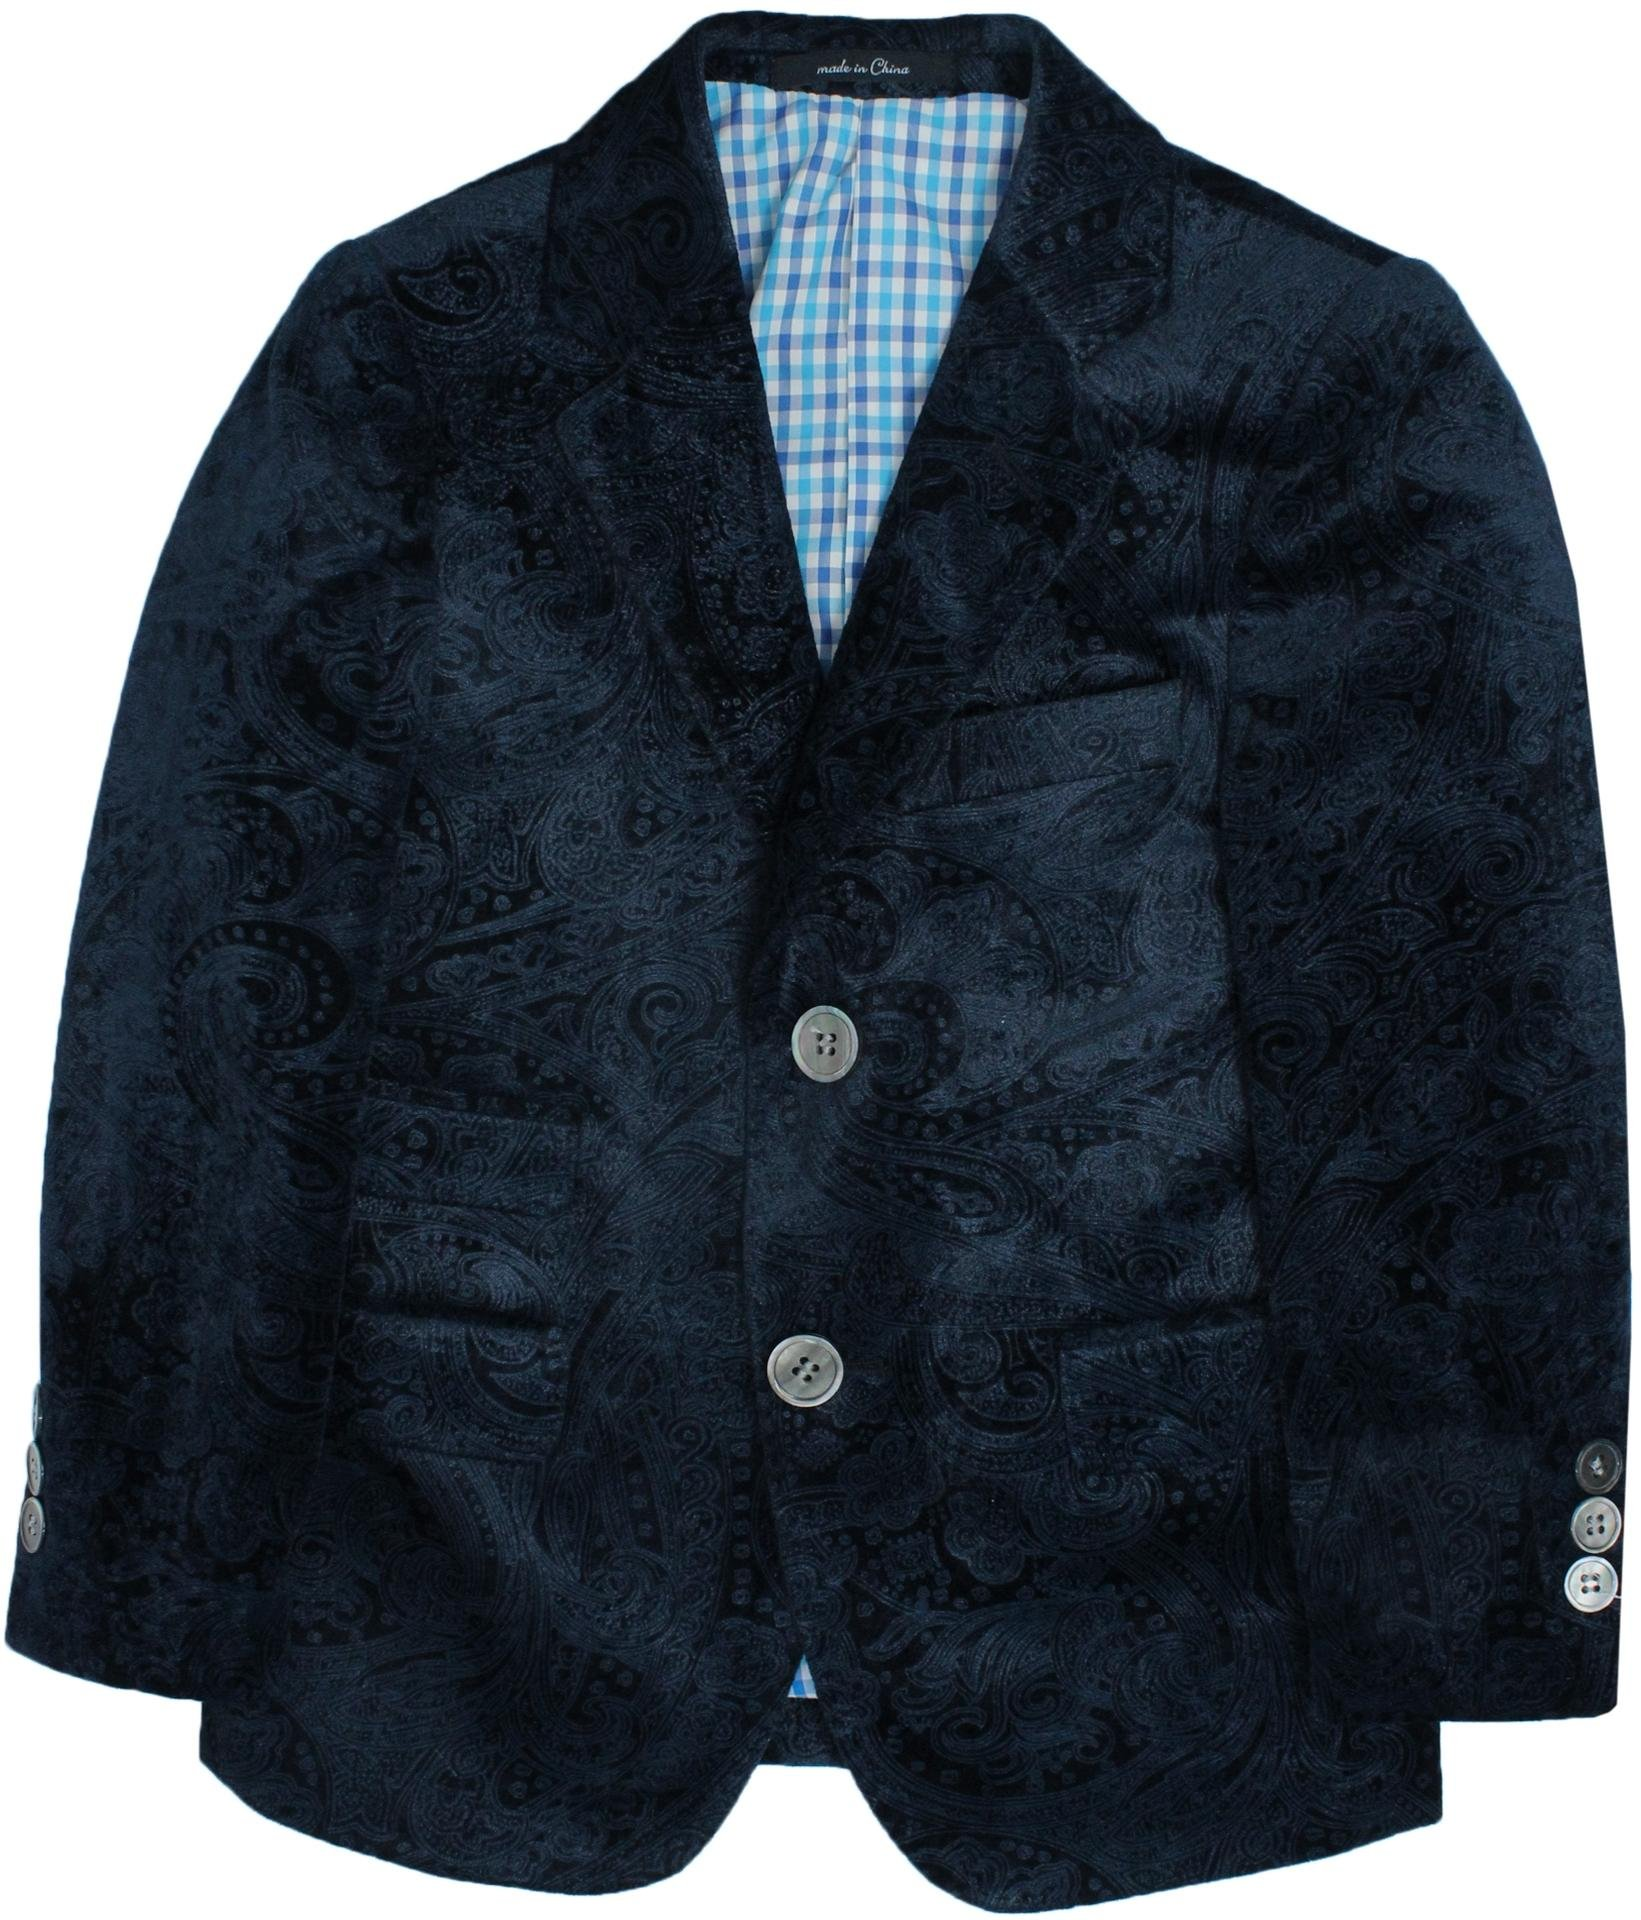 T.O. Collection Boys Navy Paisley Velvet Blazer - 6006-37 - Navy, 5 Slim by T.O. Collection